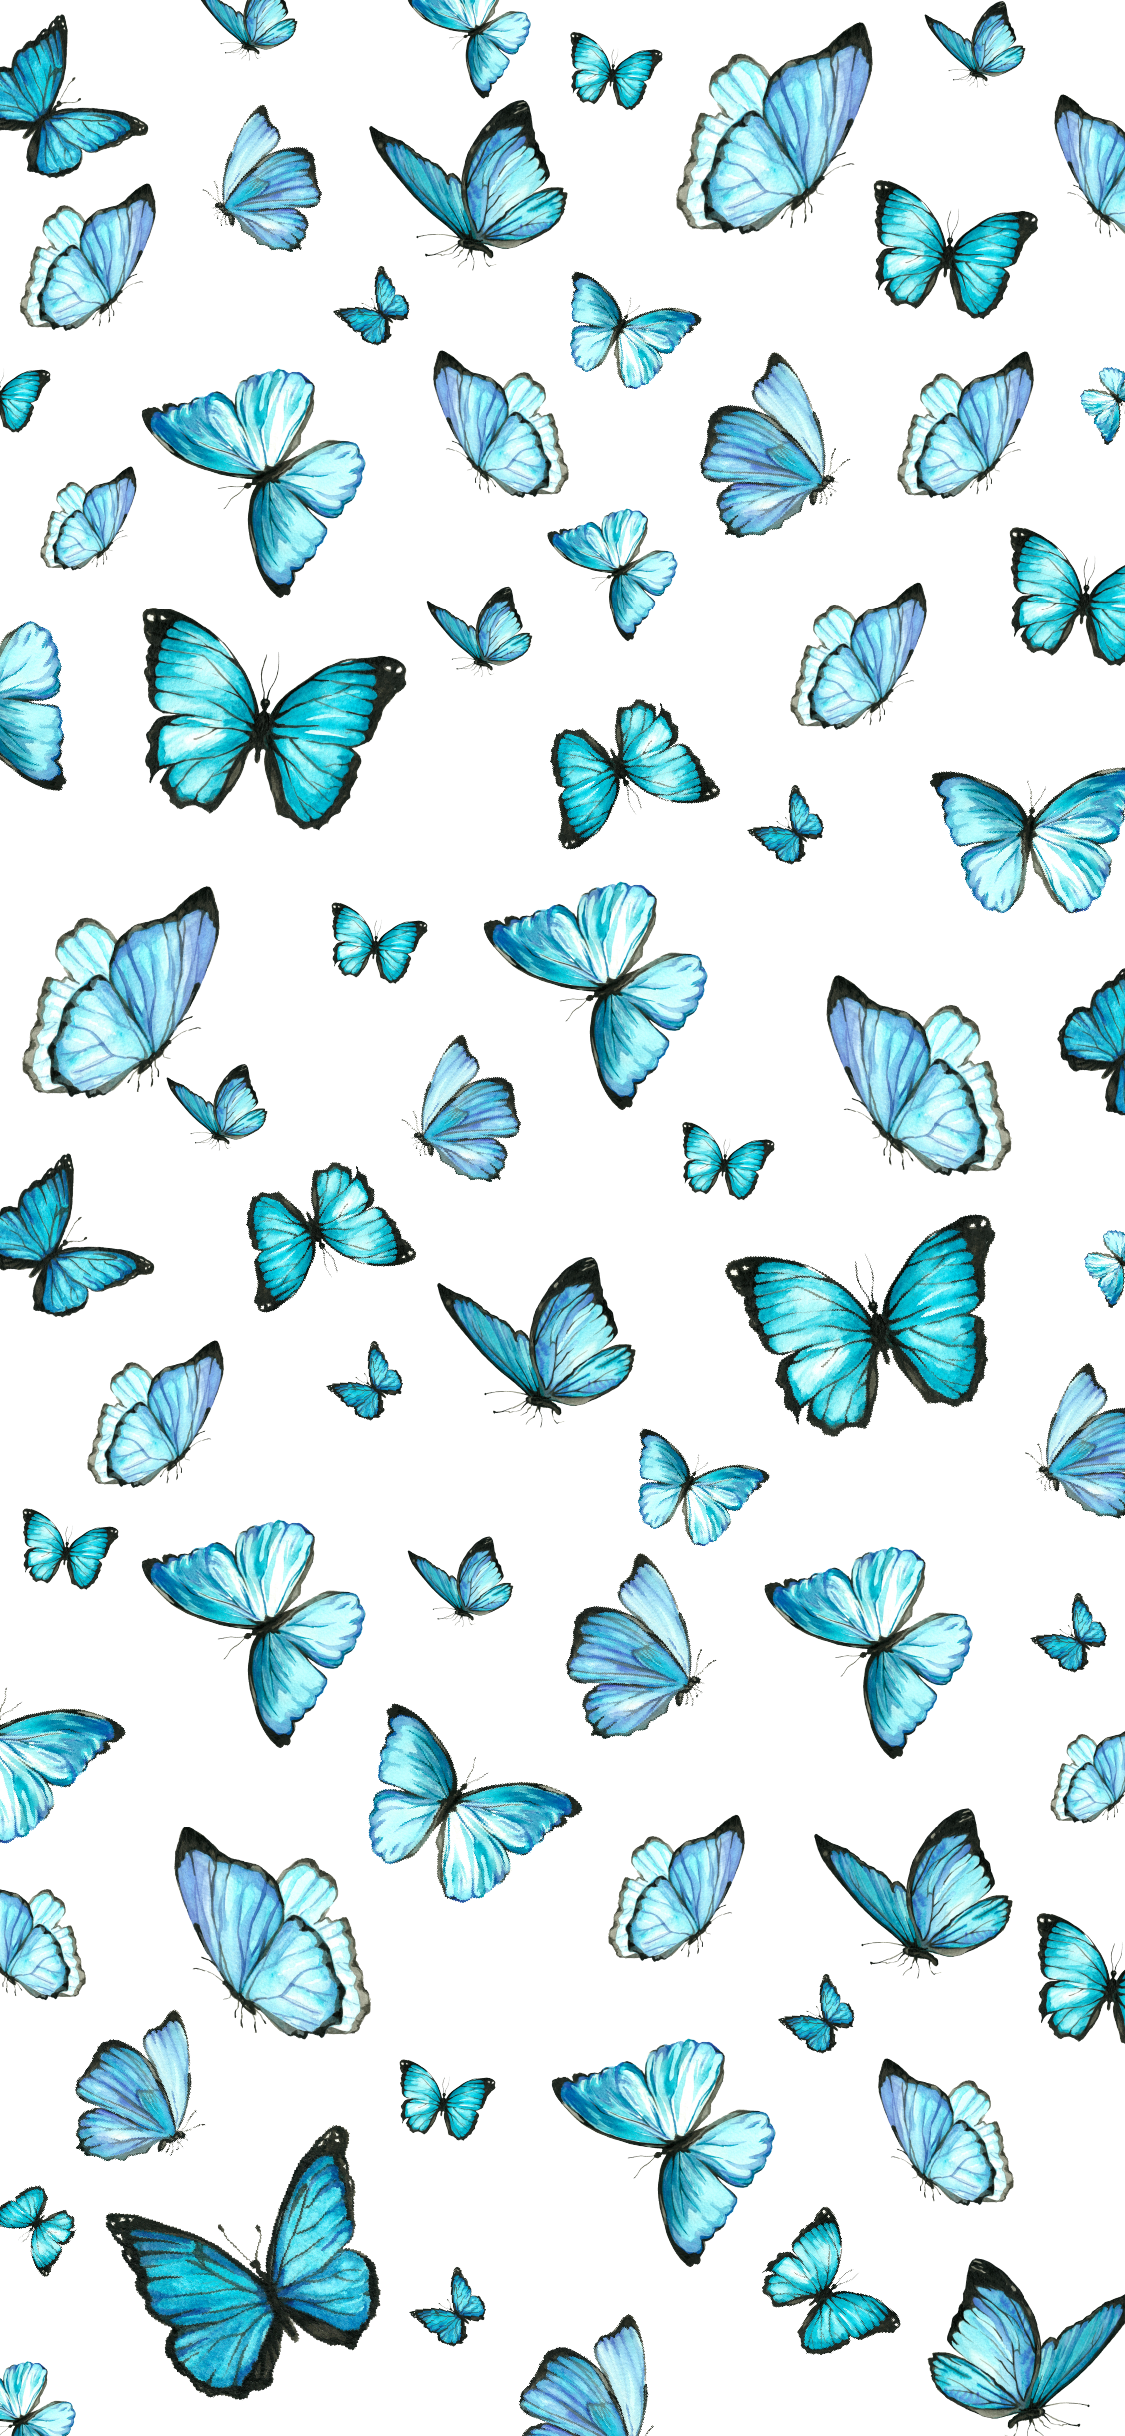 Building butterfly aesthetic arrangement aesthetics photo, resolution 2600×1733 pixel, image type jpg / psd, free download and free for commercial use. Pin On Artwork